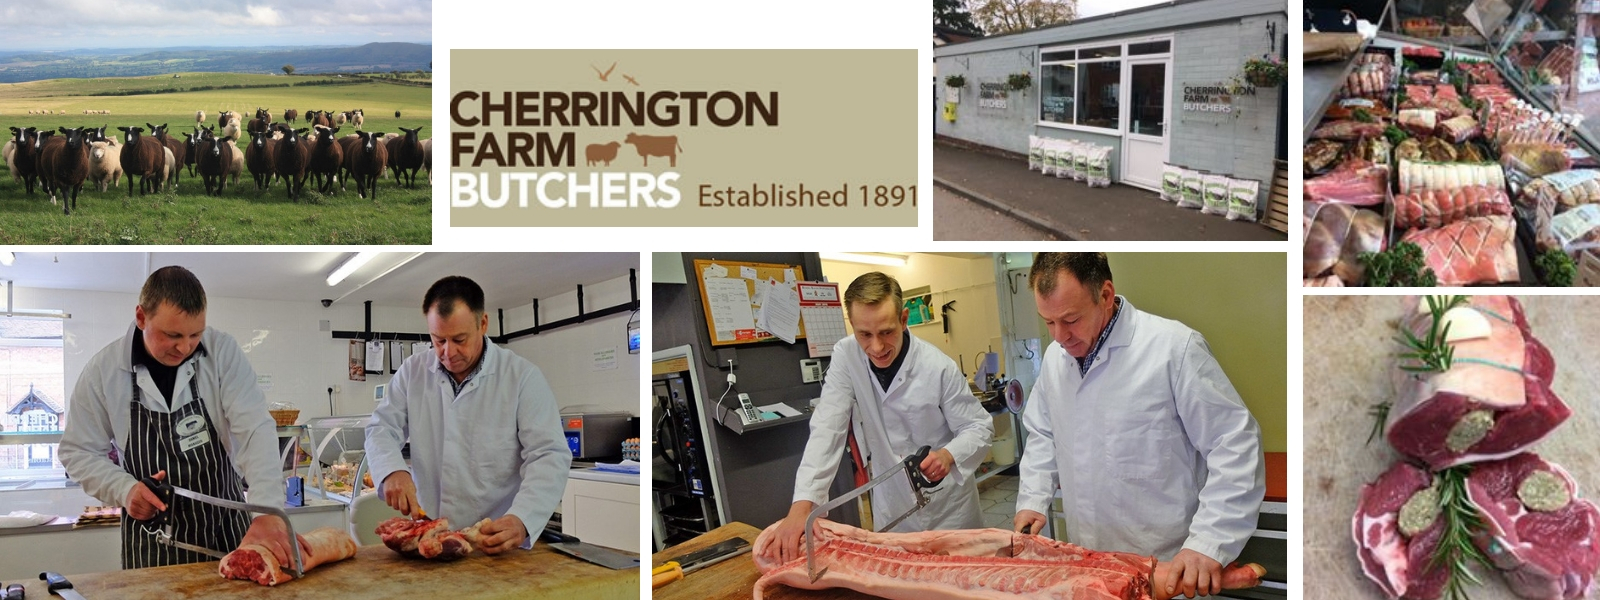 Cherrington Farm Shop